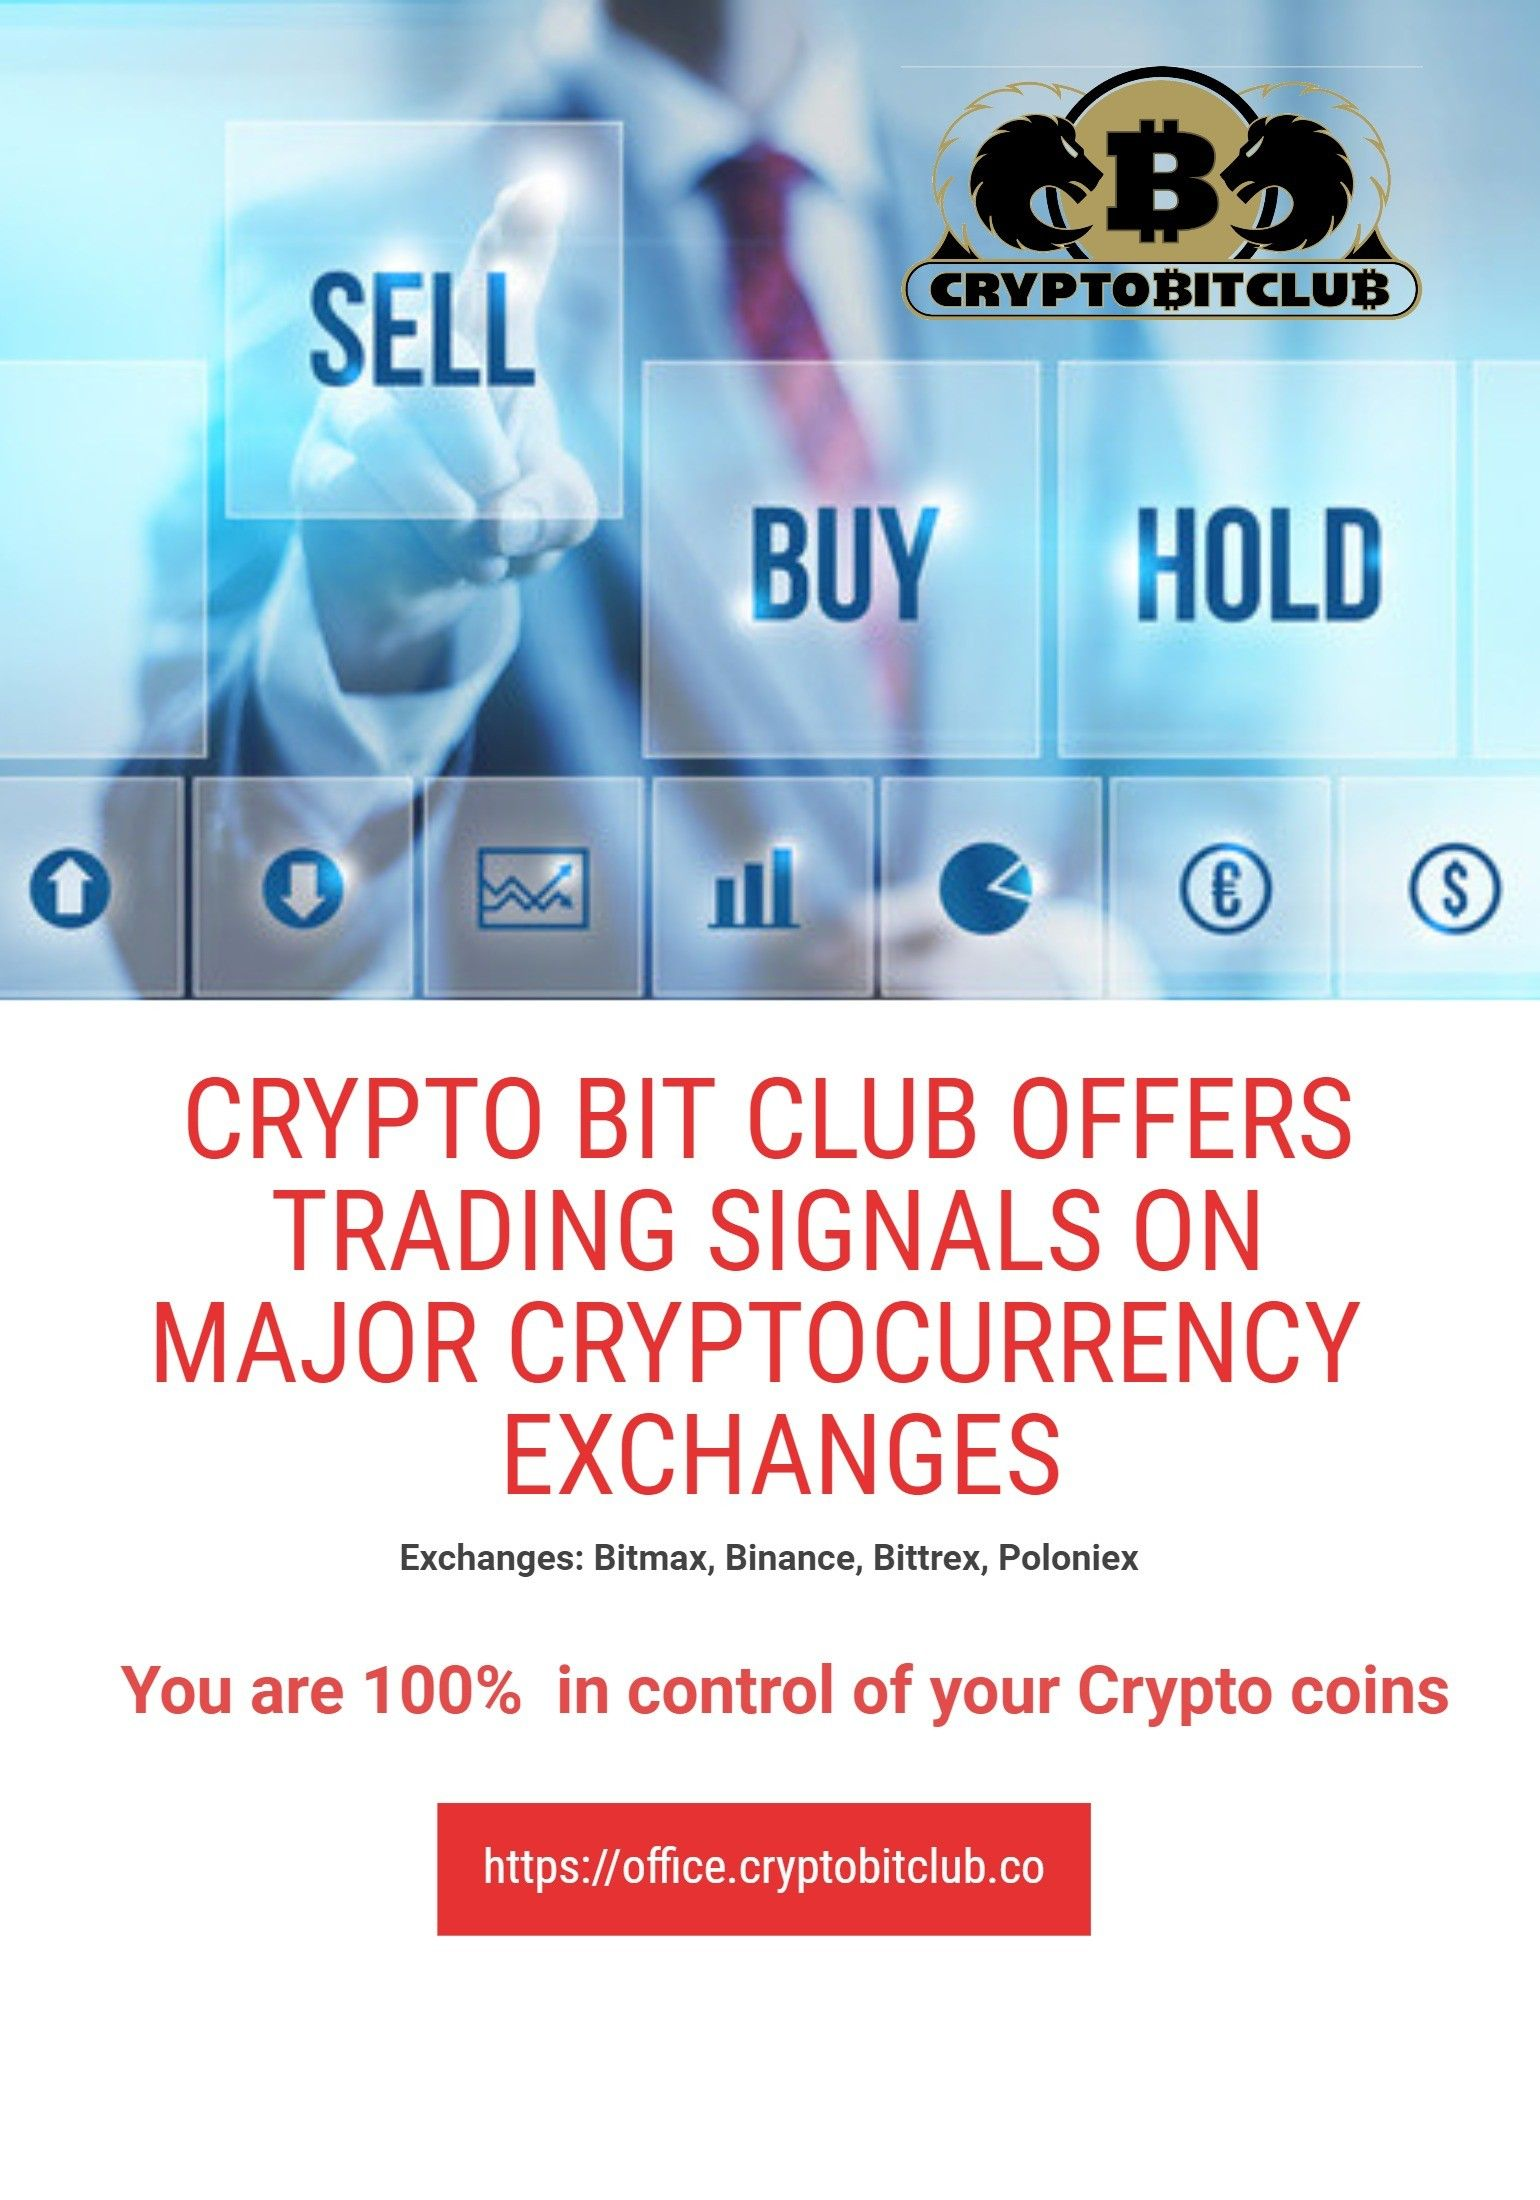 Crypto Bit Club Offers Trading Signals On Major Cryptocurrency